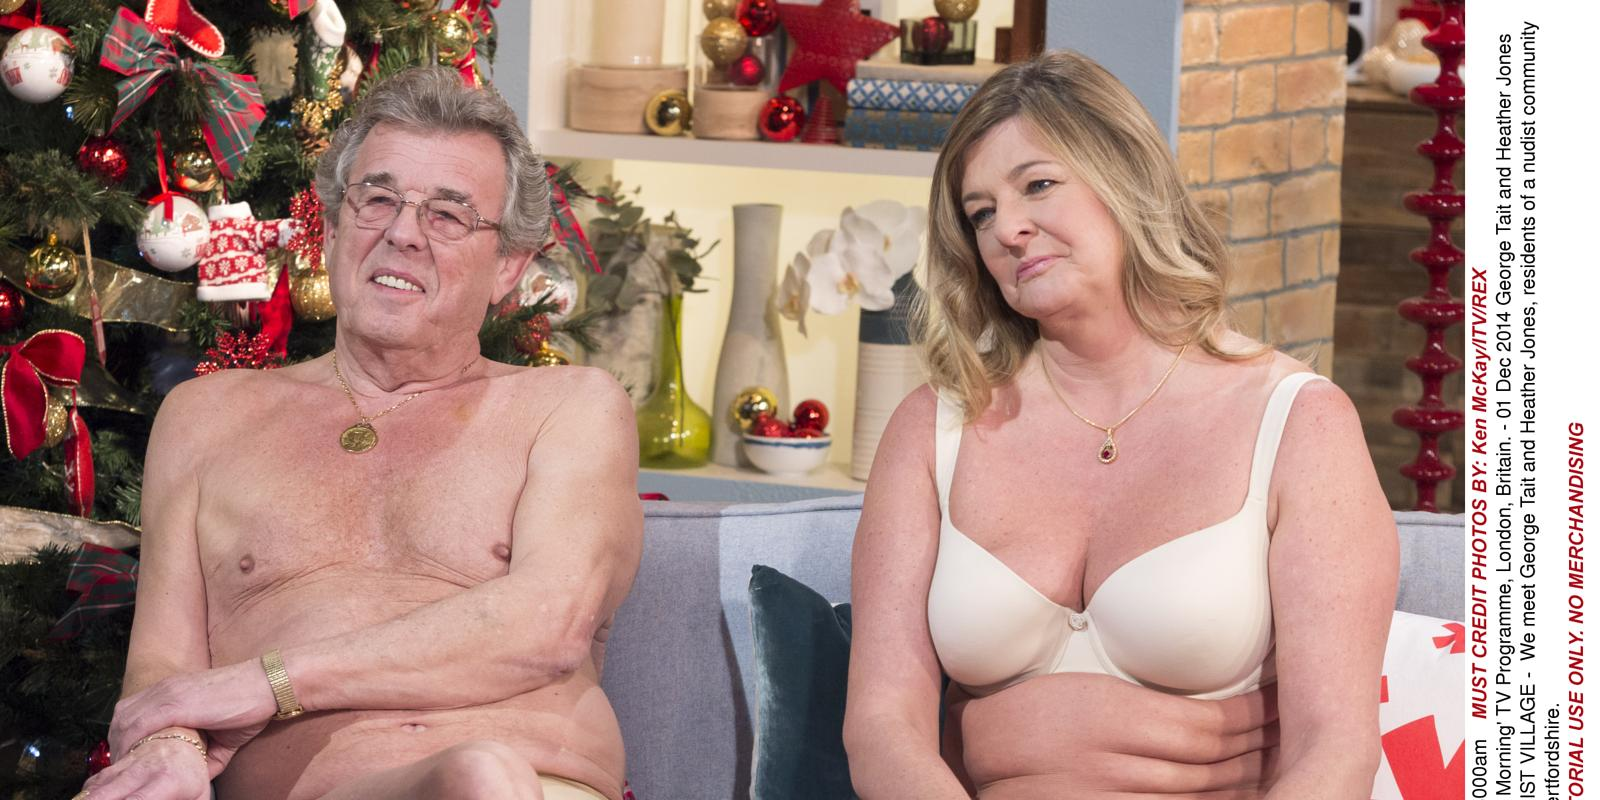 Amanda Holden attempts to keep straight face with nudists on TV